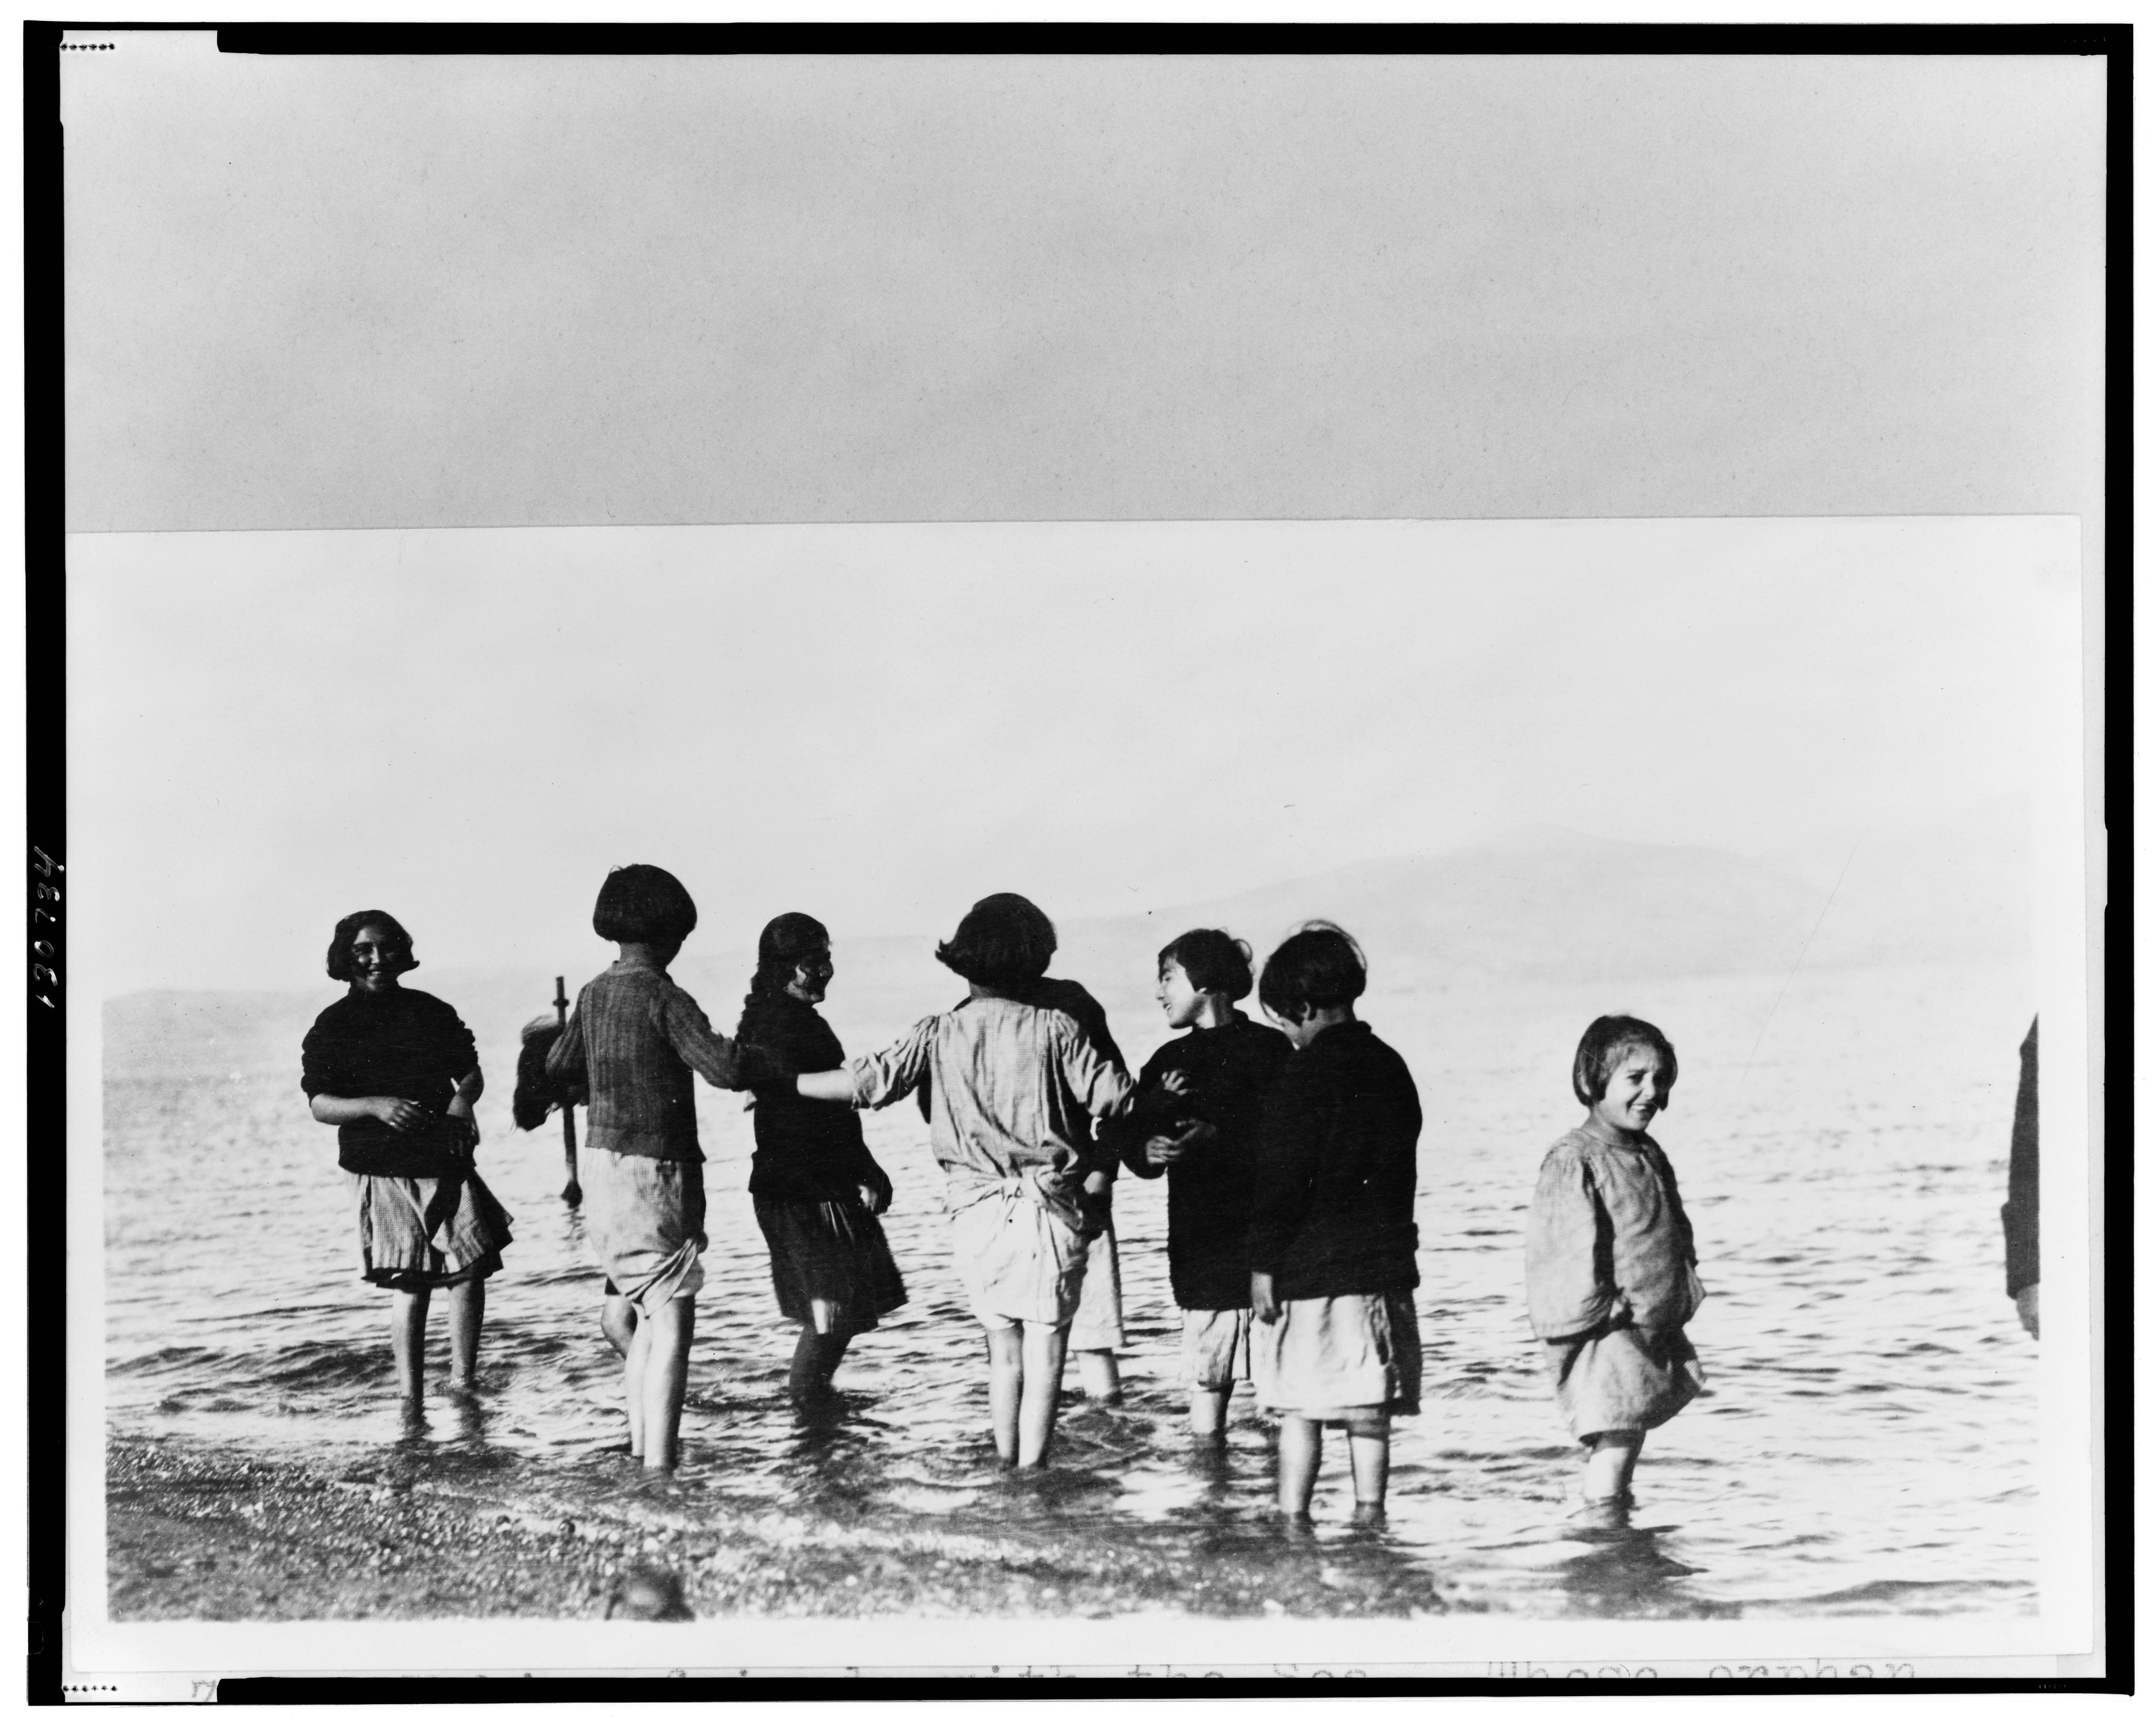 http://i0.wp.com/antikleidi.com/wp-content/uploads/2012/07/20100613055900greek_and_armenian_refugee_children_in_the_sea_near_marathon_greece_c-_1915.jpg